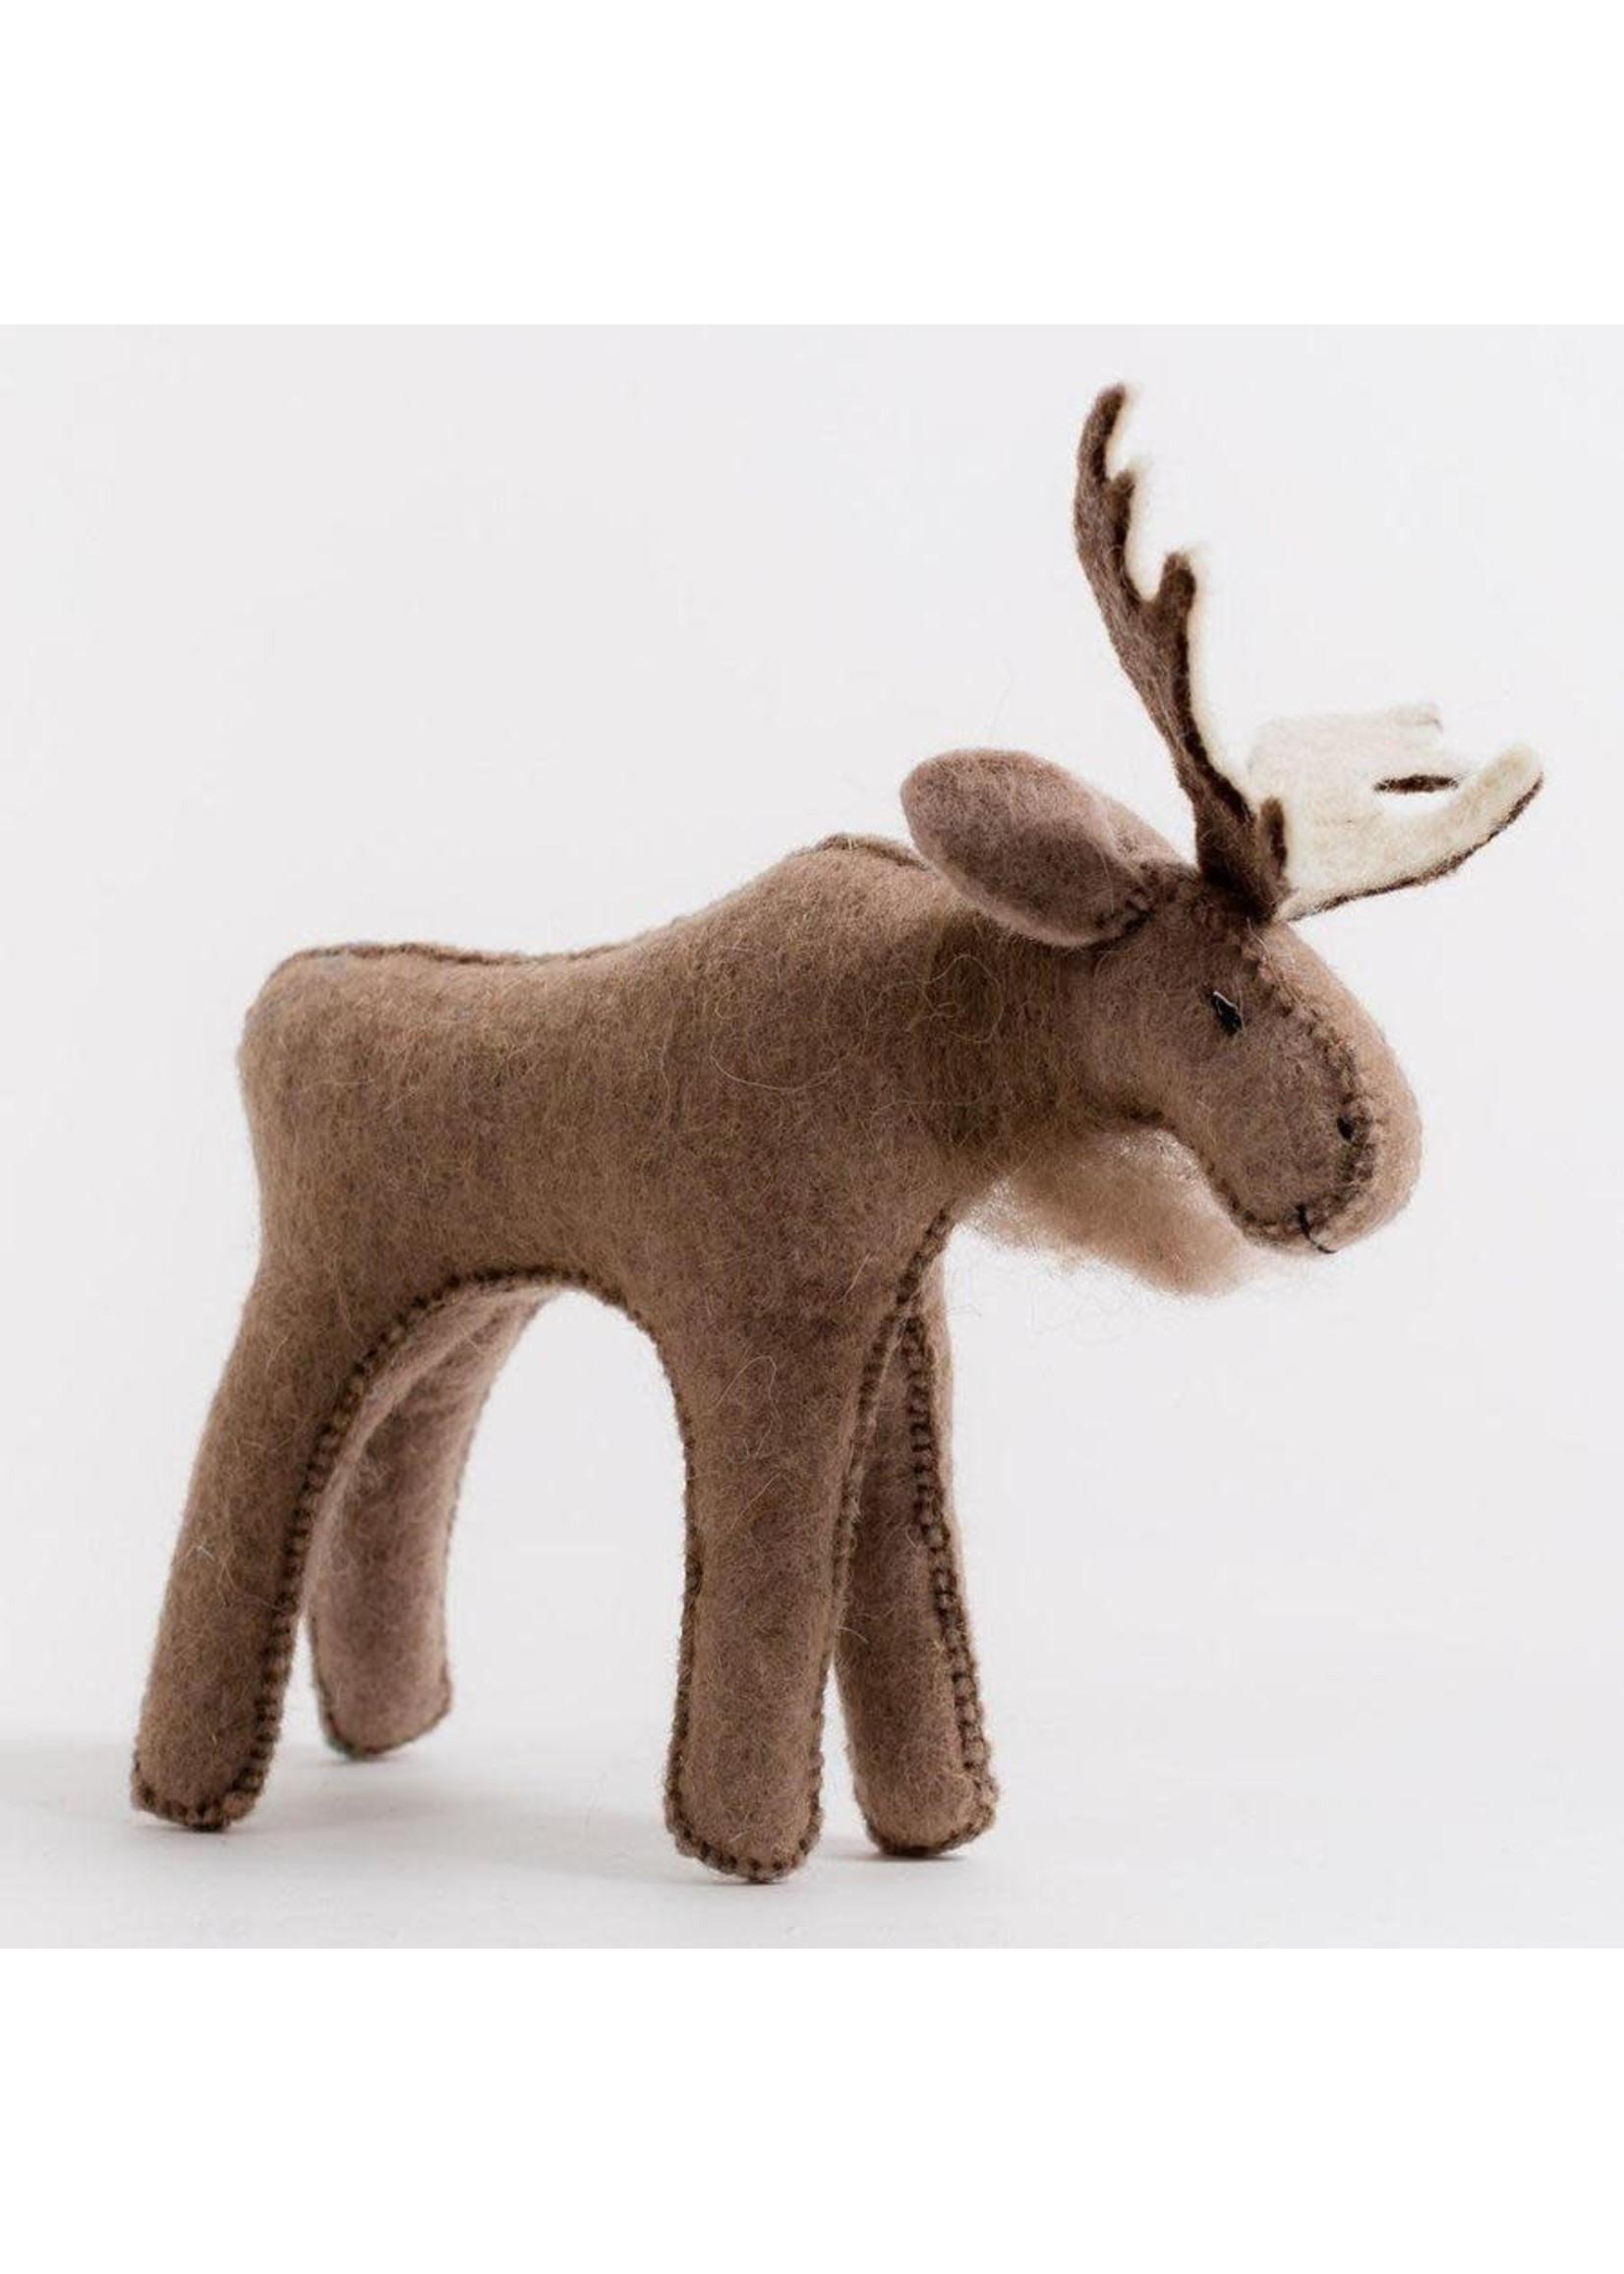 Ornament - Wise Moose